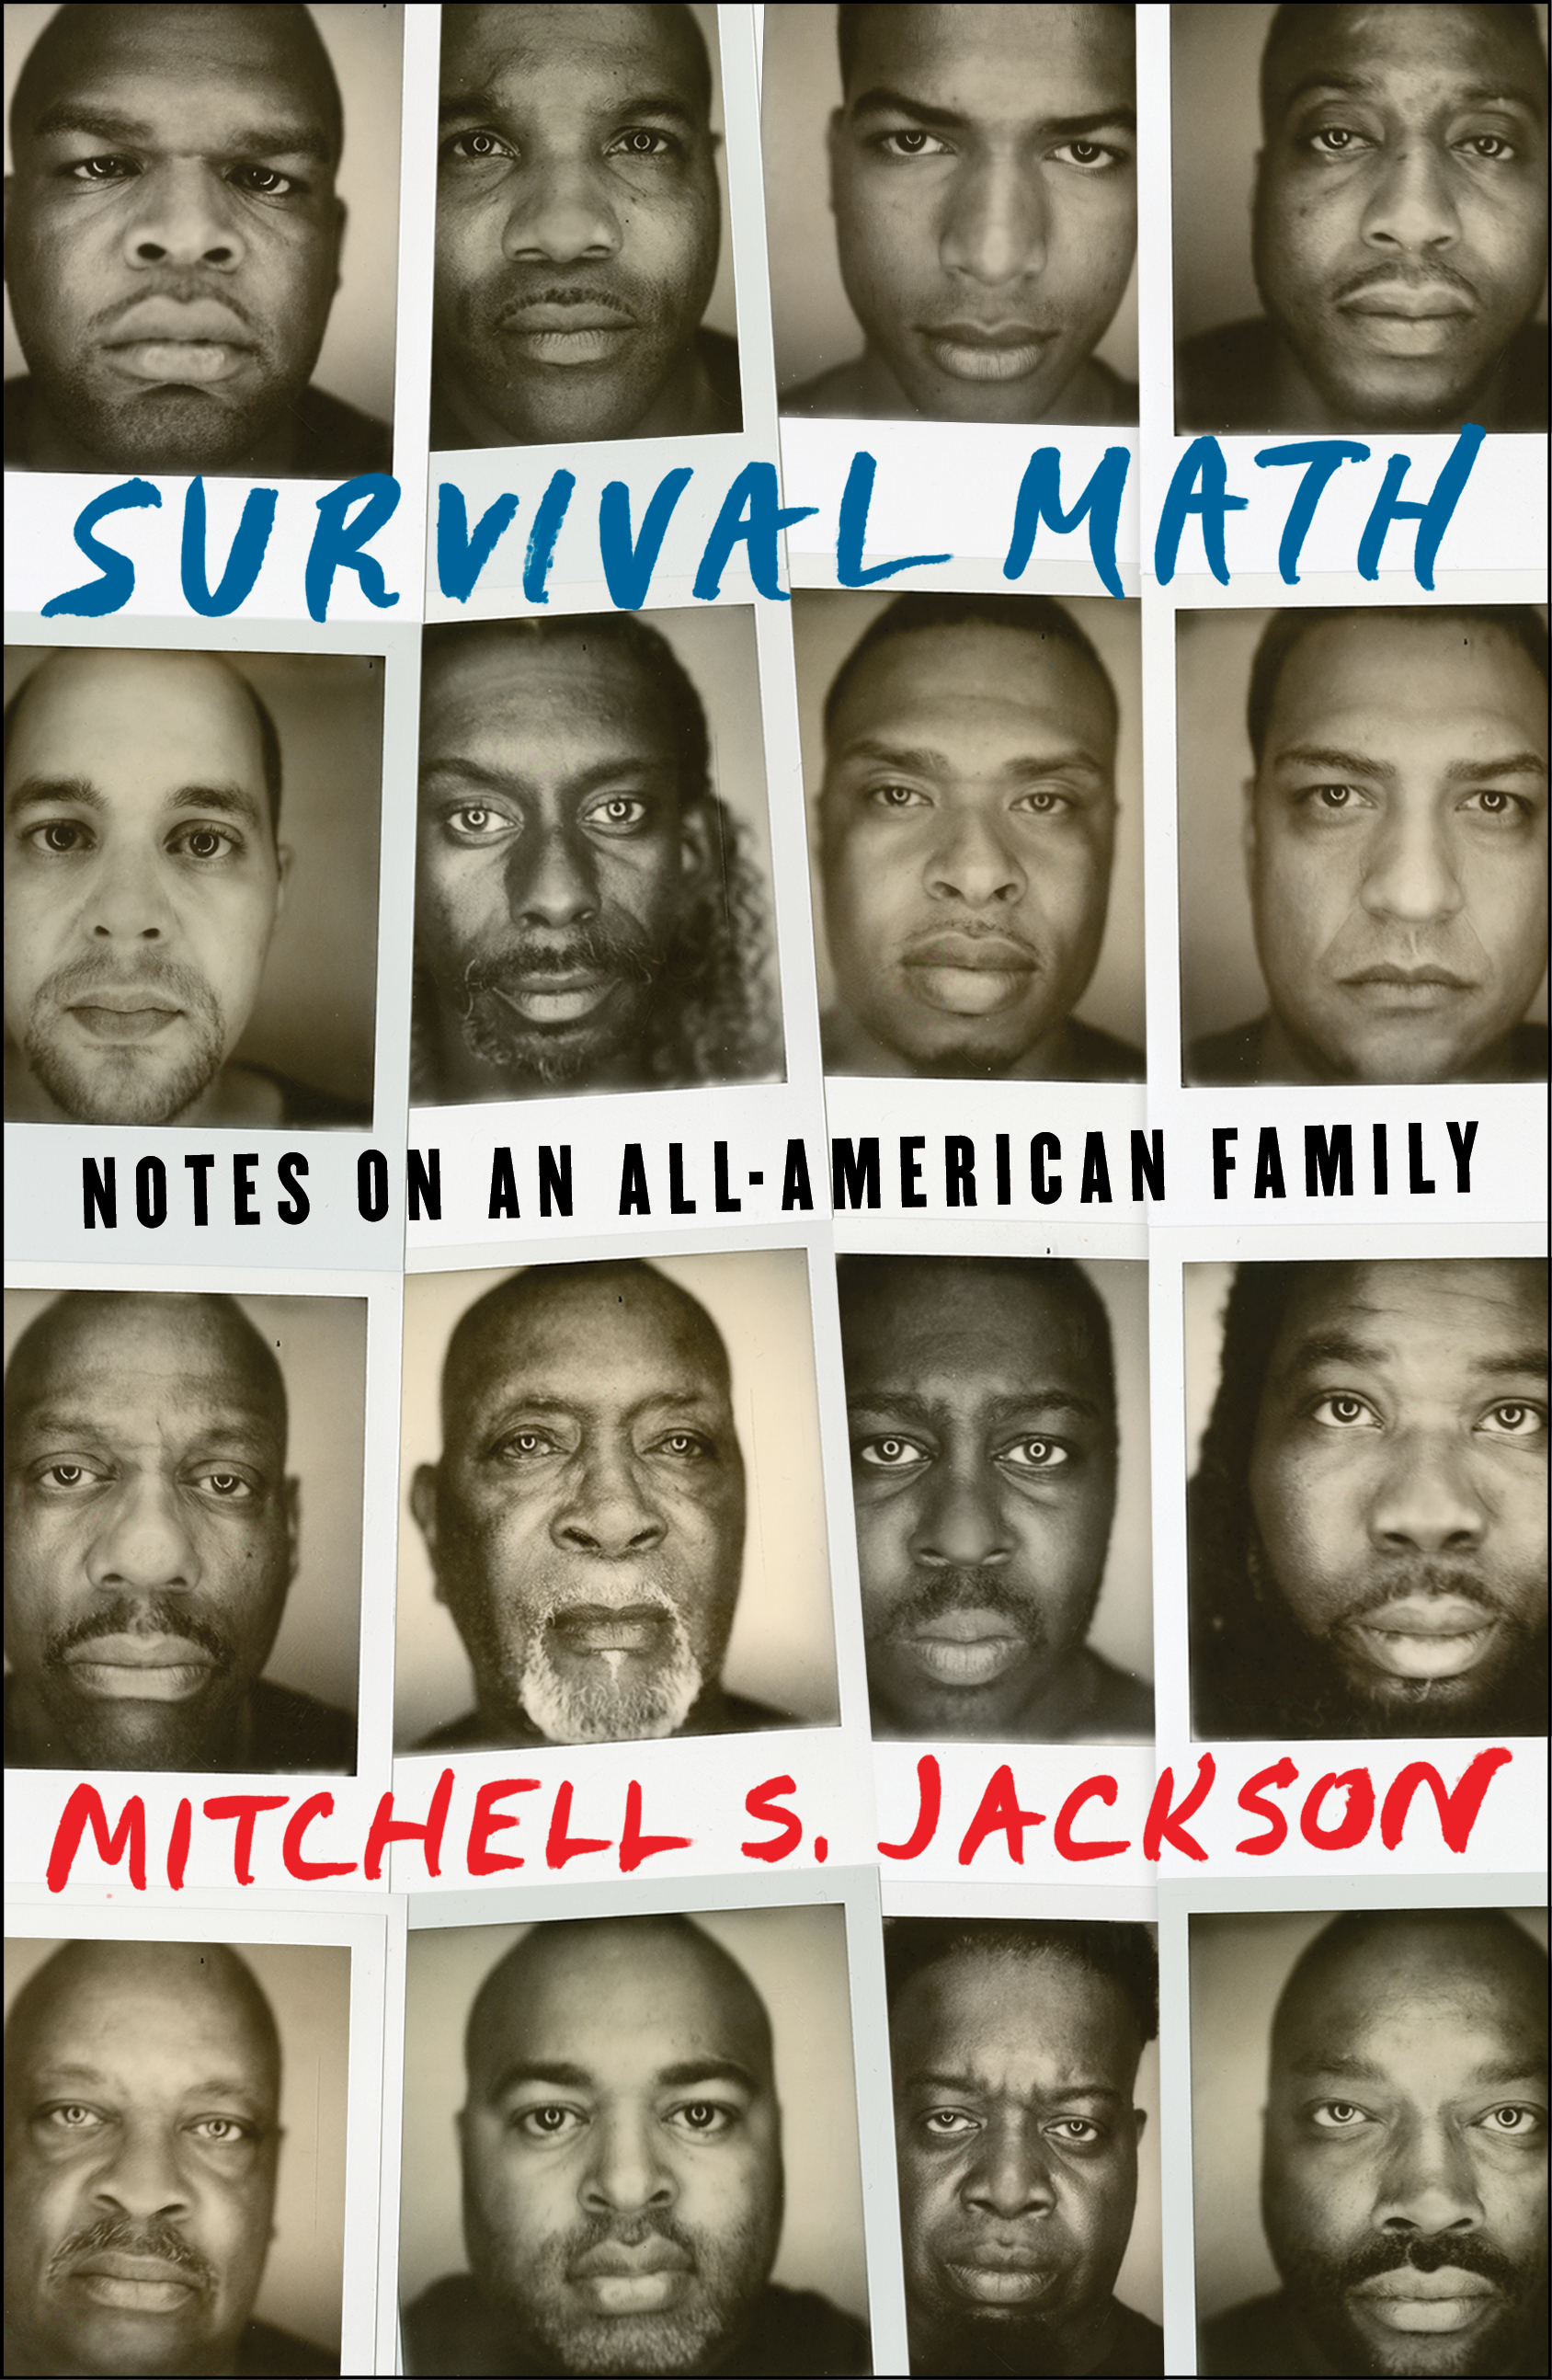 Mitchell S  Jackson attempts to calculate 'Survival Math' of black